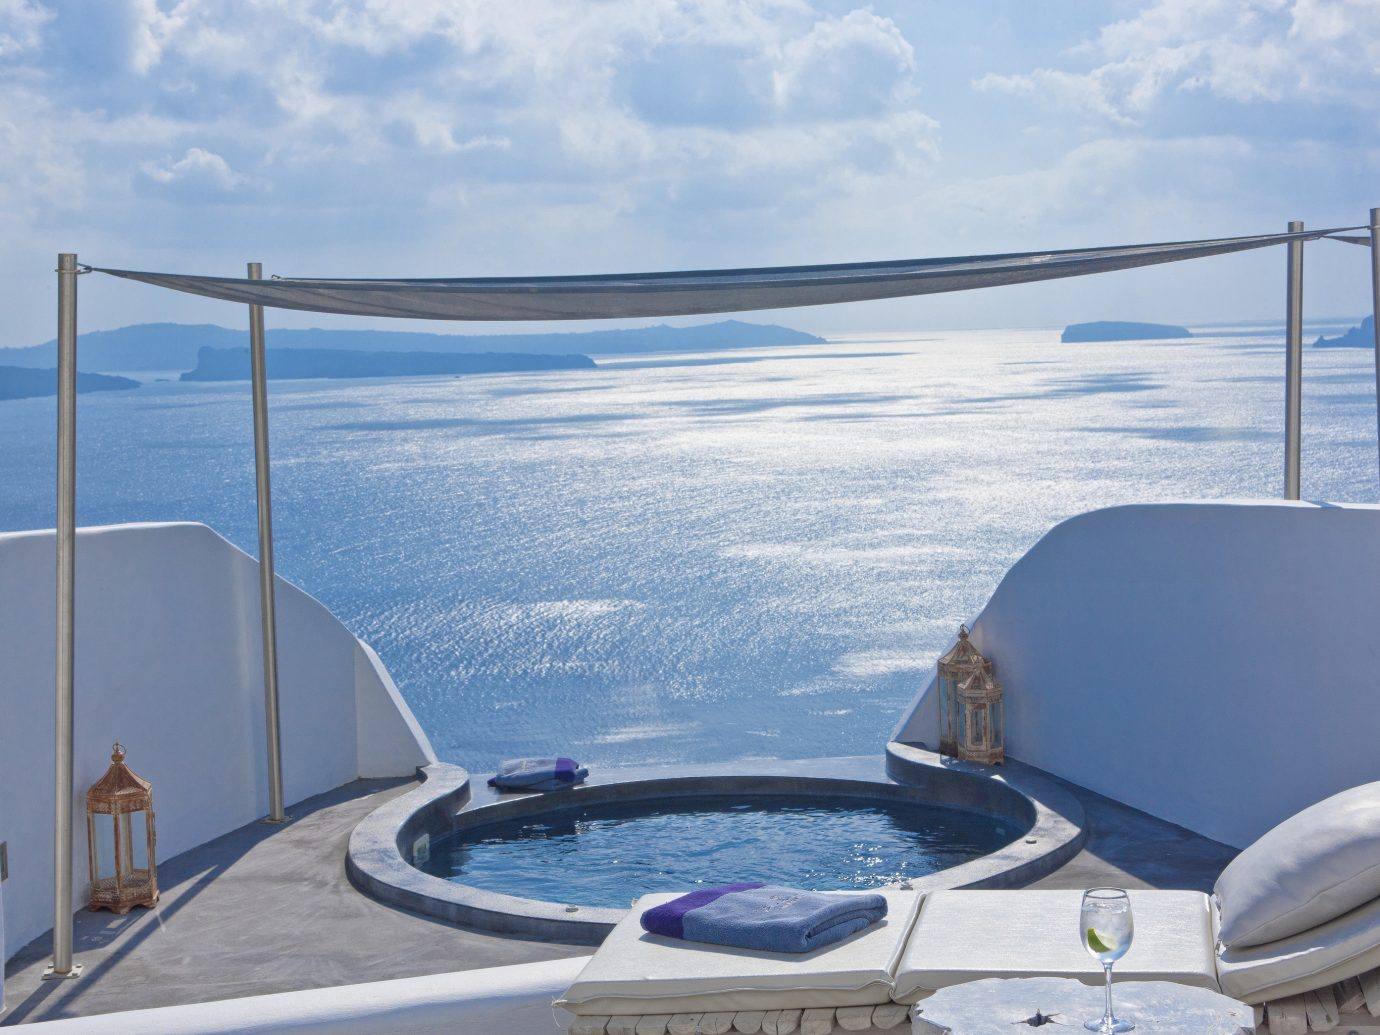 Hotels Luxury Travel sky water outdoor swimming pool Sea glass Ocean window vacation yacht Boat overlooking amenity leisure Deck day shore